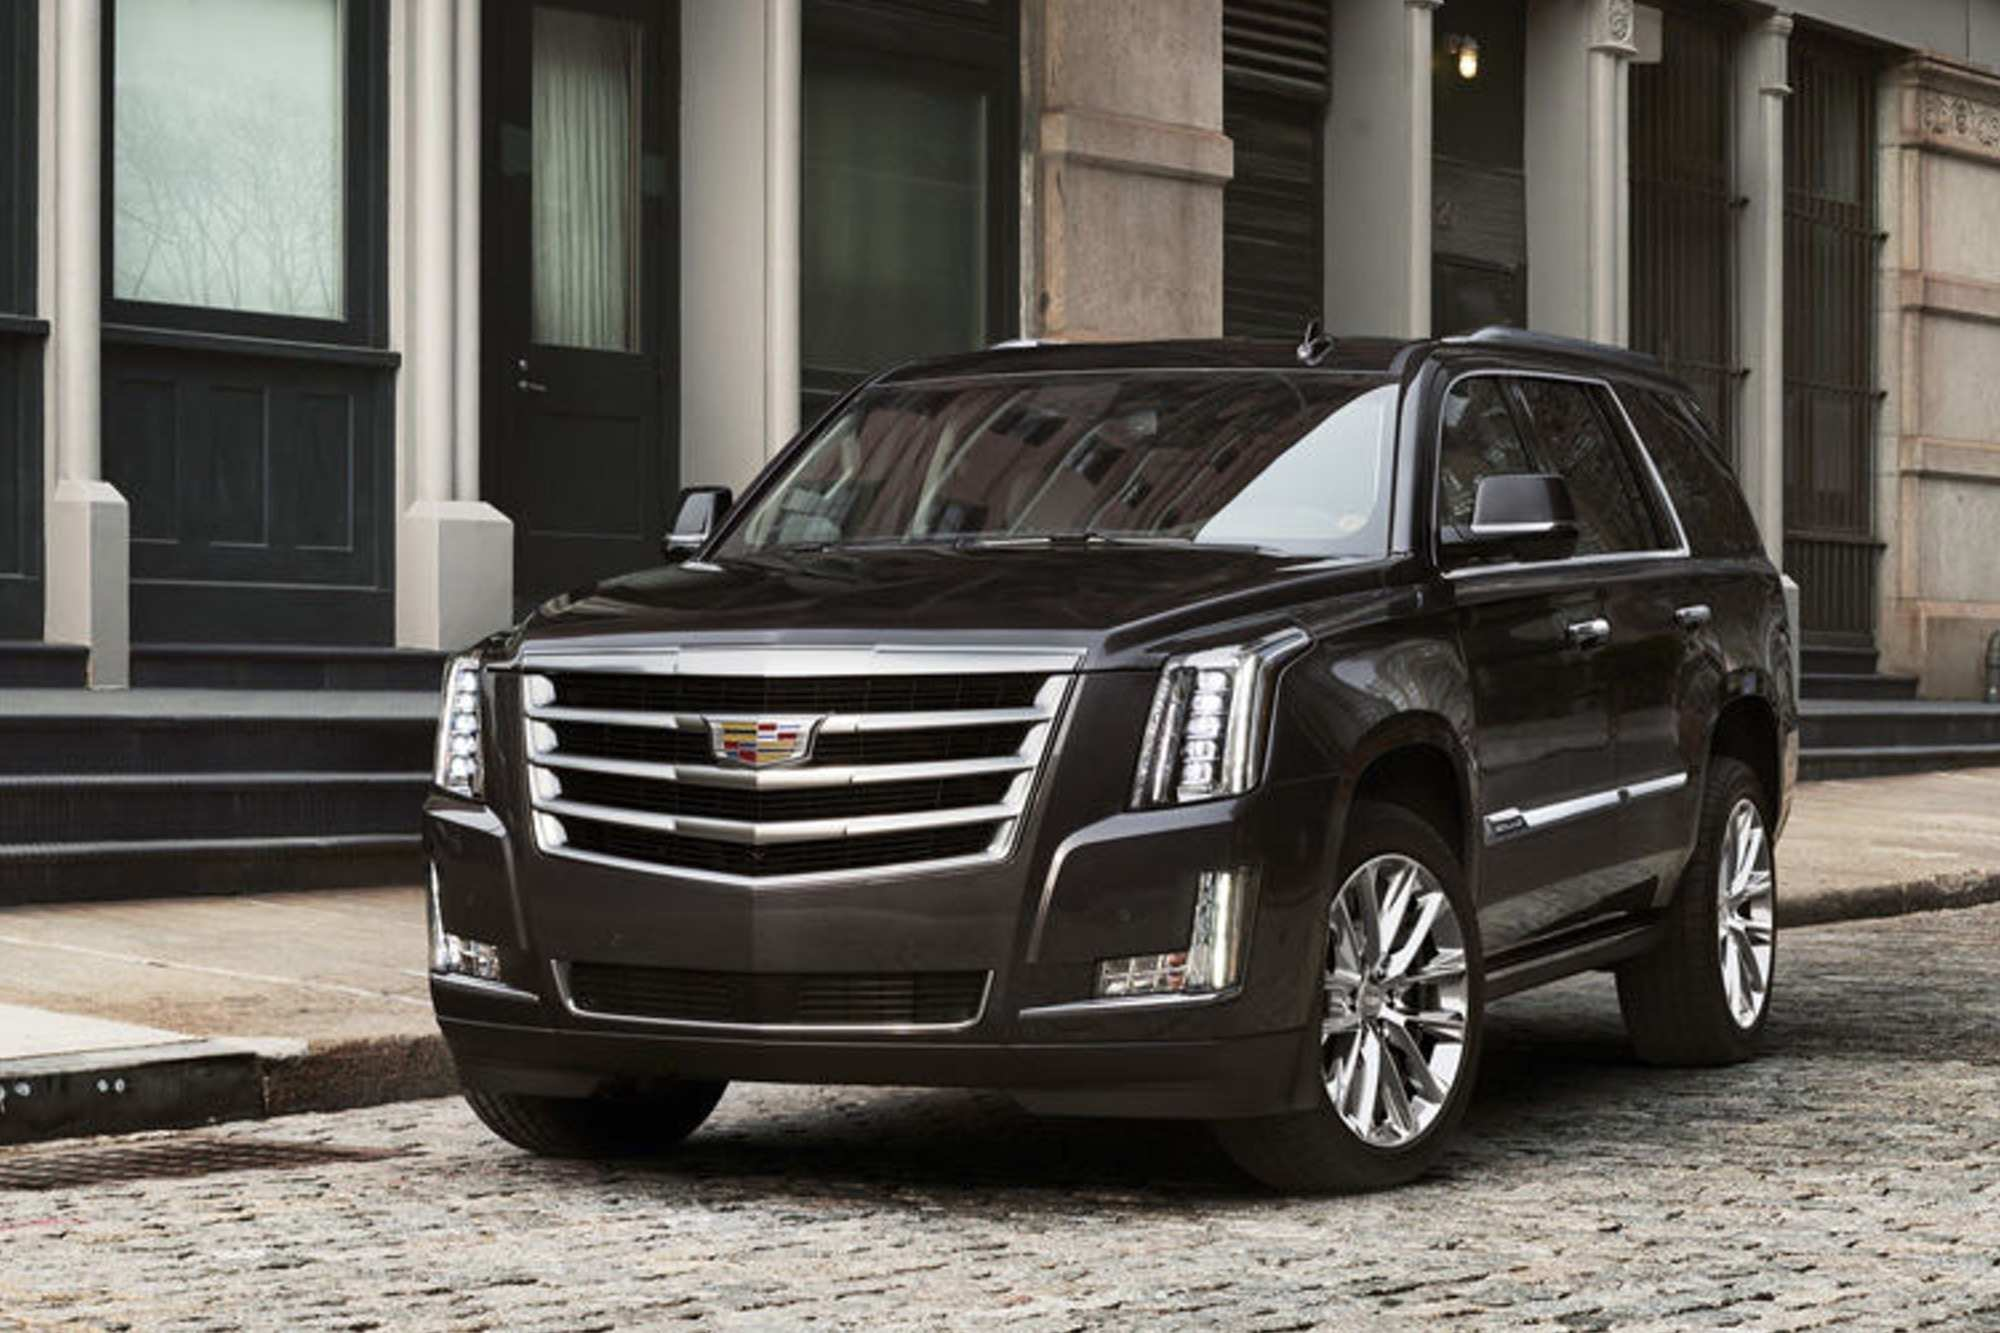 57 Gallery of When Can I Order A 2020 Cadillac Escalade Ratings by When Can I Order A 2020 Cadillac Escalade